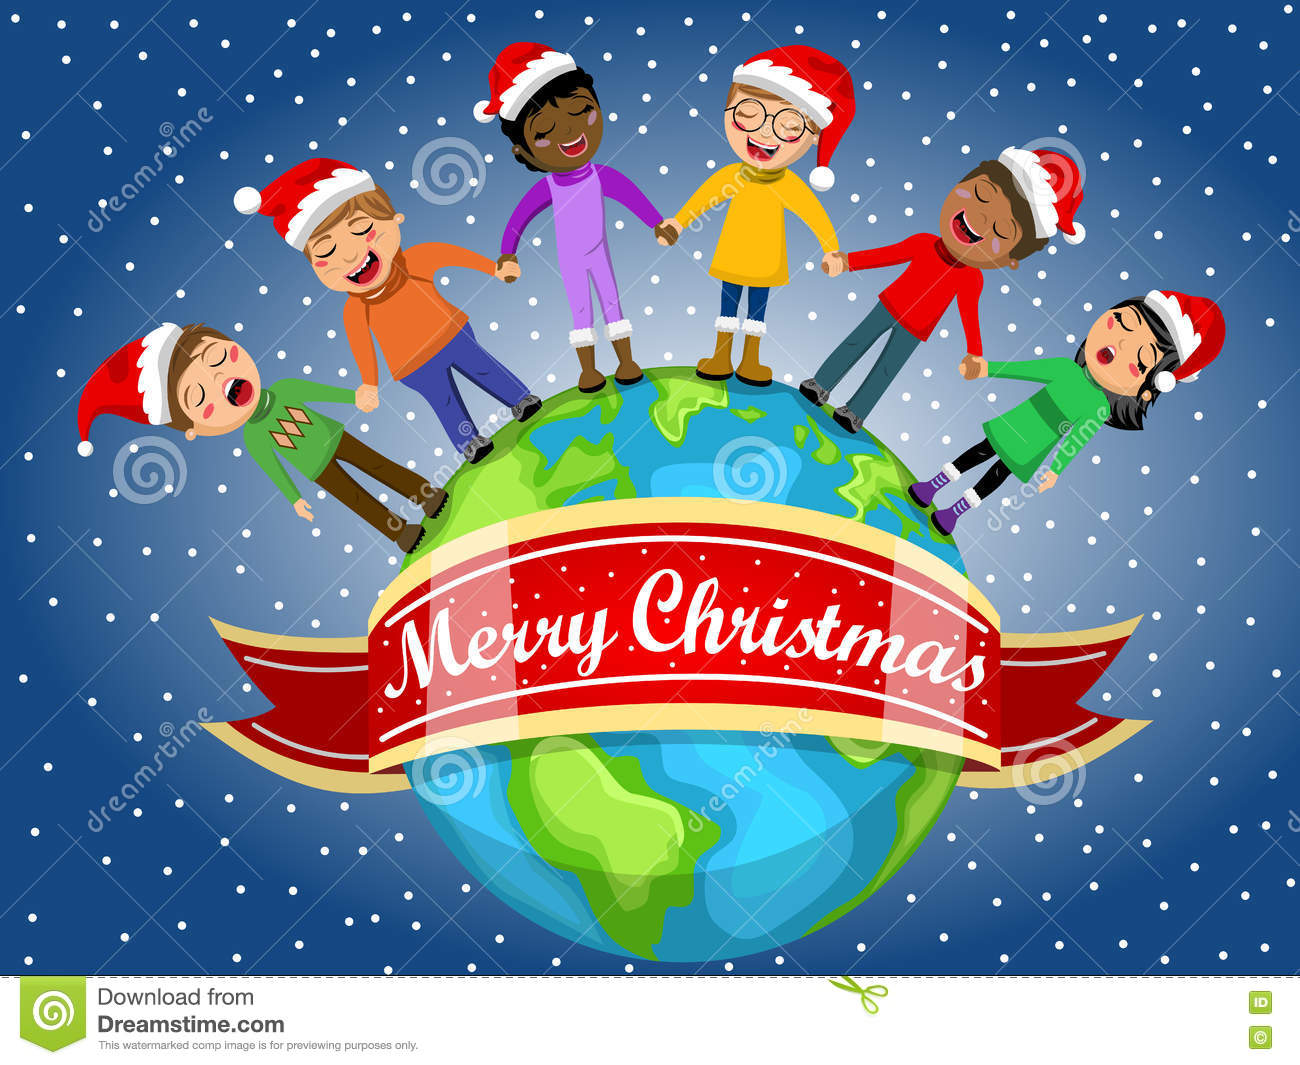 c2fad850fcab3 Multicultural kids wearing xmas hat singing Christmas carol hand in hand on  Earth. More similar stock illustrations